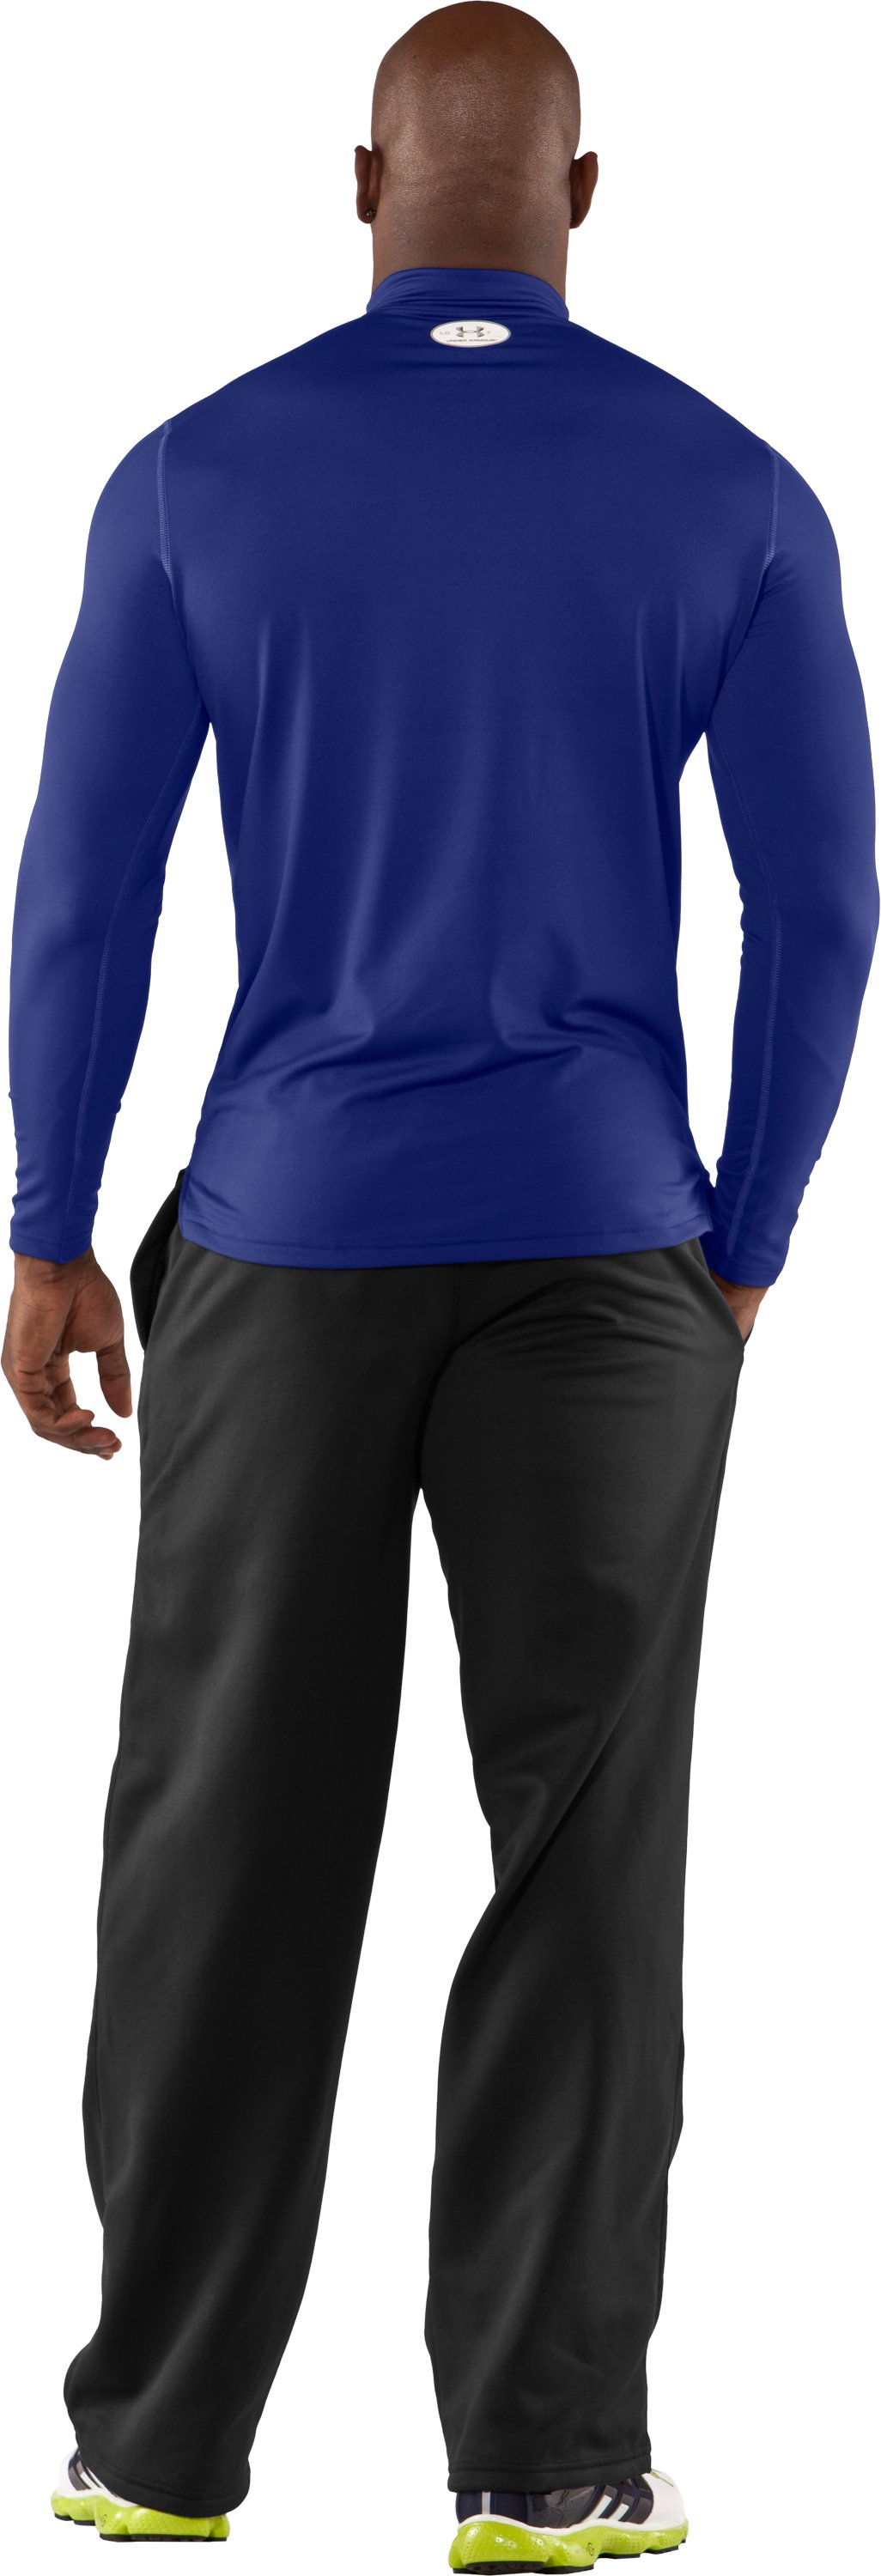 Men's ColdGear® Fitted Long Sleeve Mock, Royal, Back